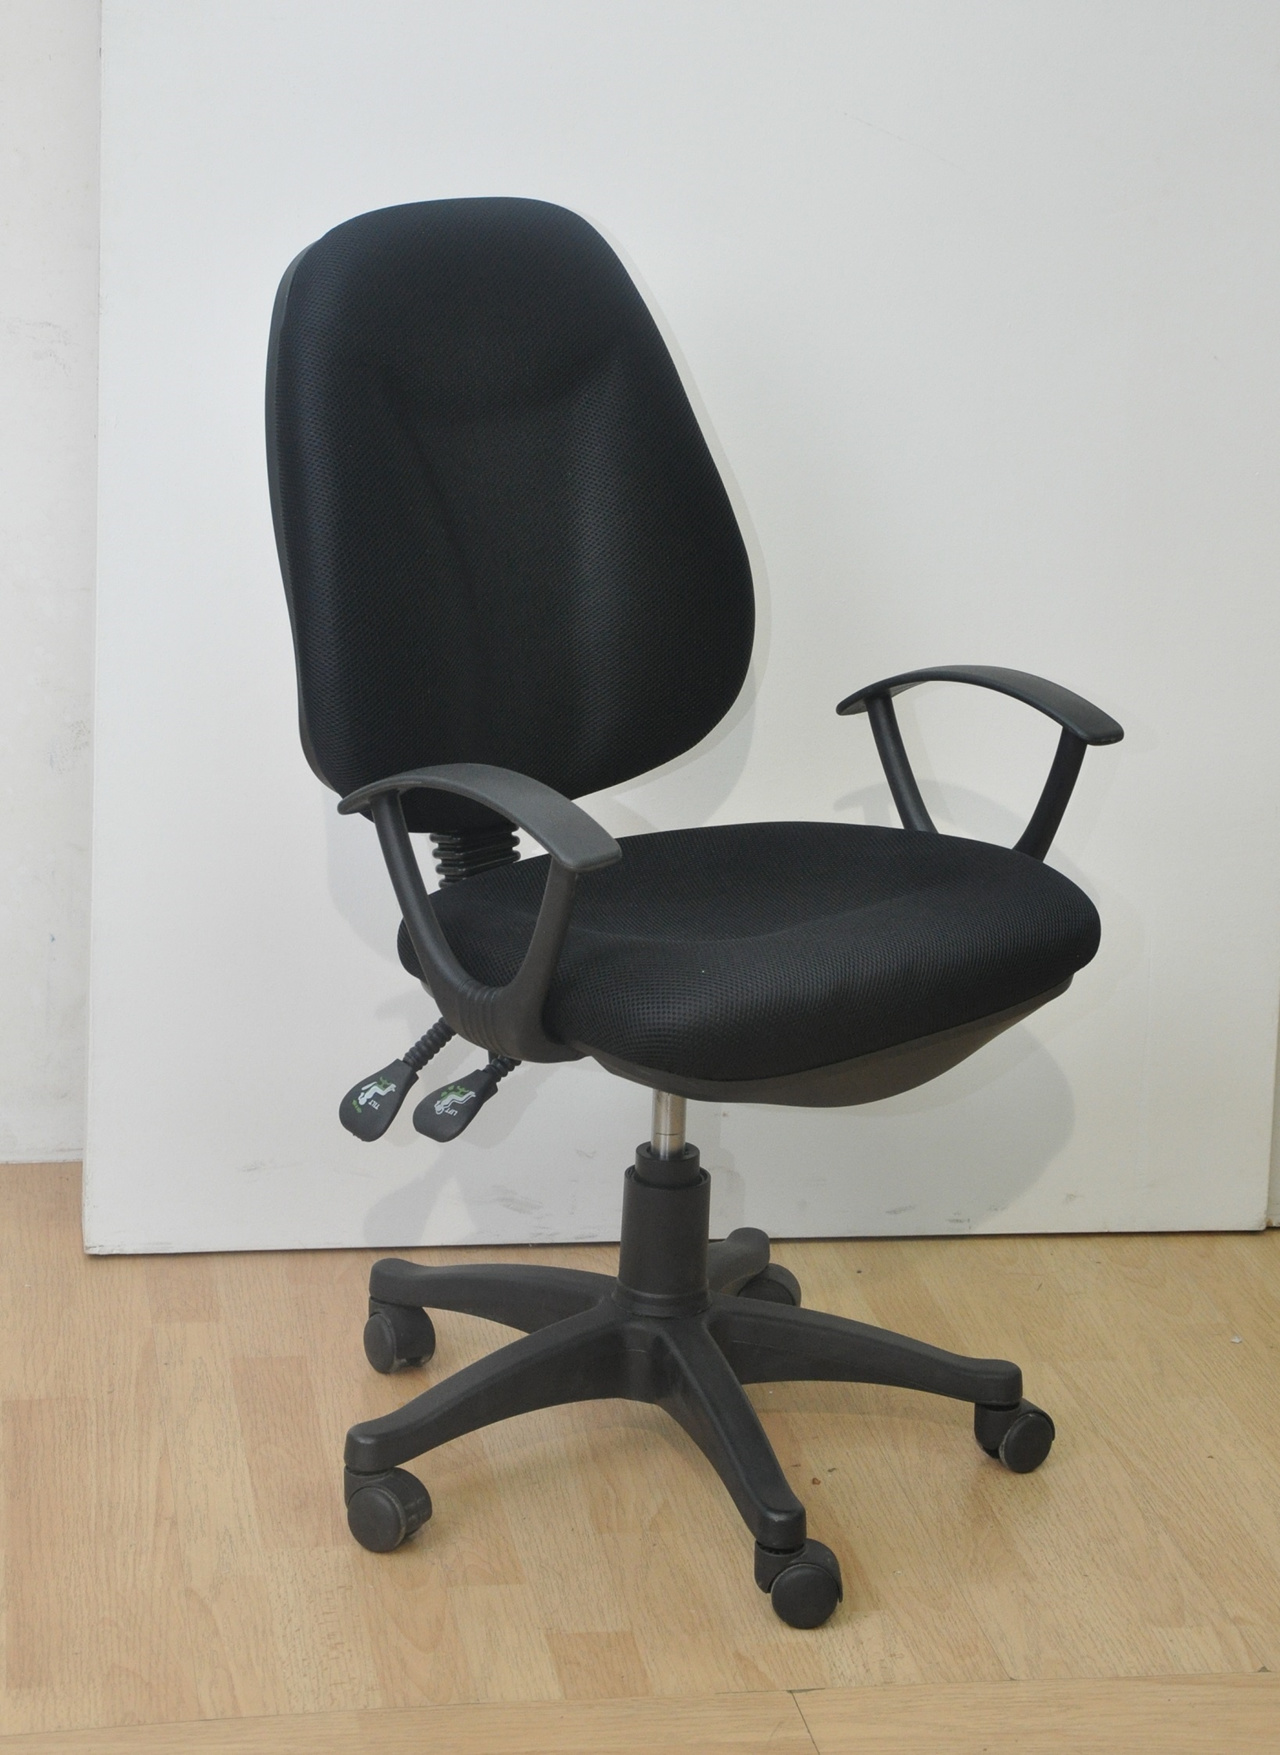 Officeworks Stools Office Chair Qoo10 Jaxx Bean Bag Chairs Ergonomic Stool